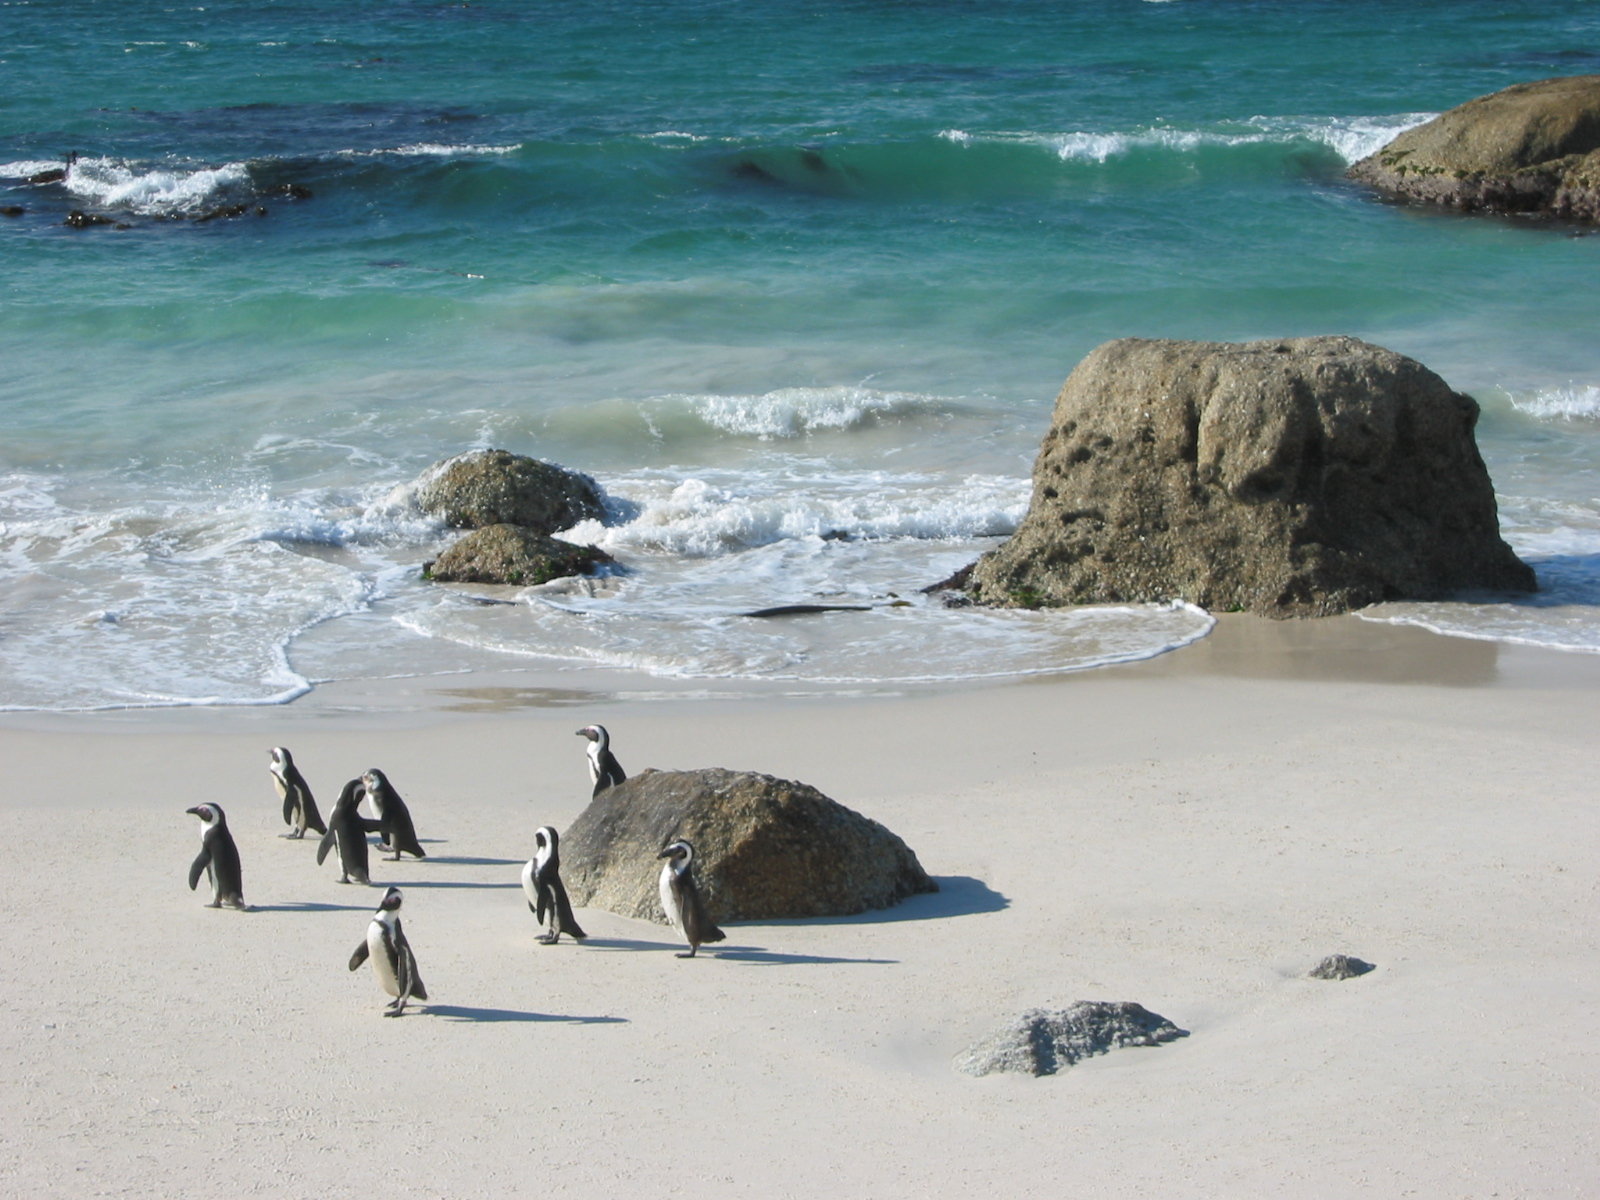 South Africa - Travel Bucket List Countries